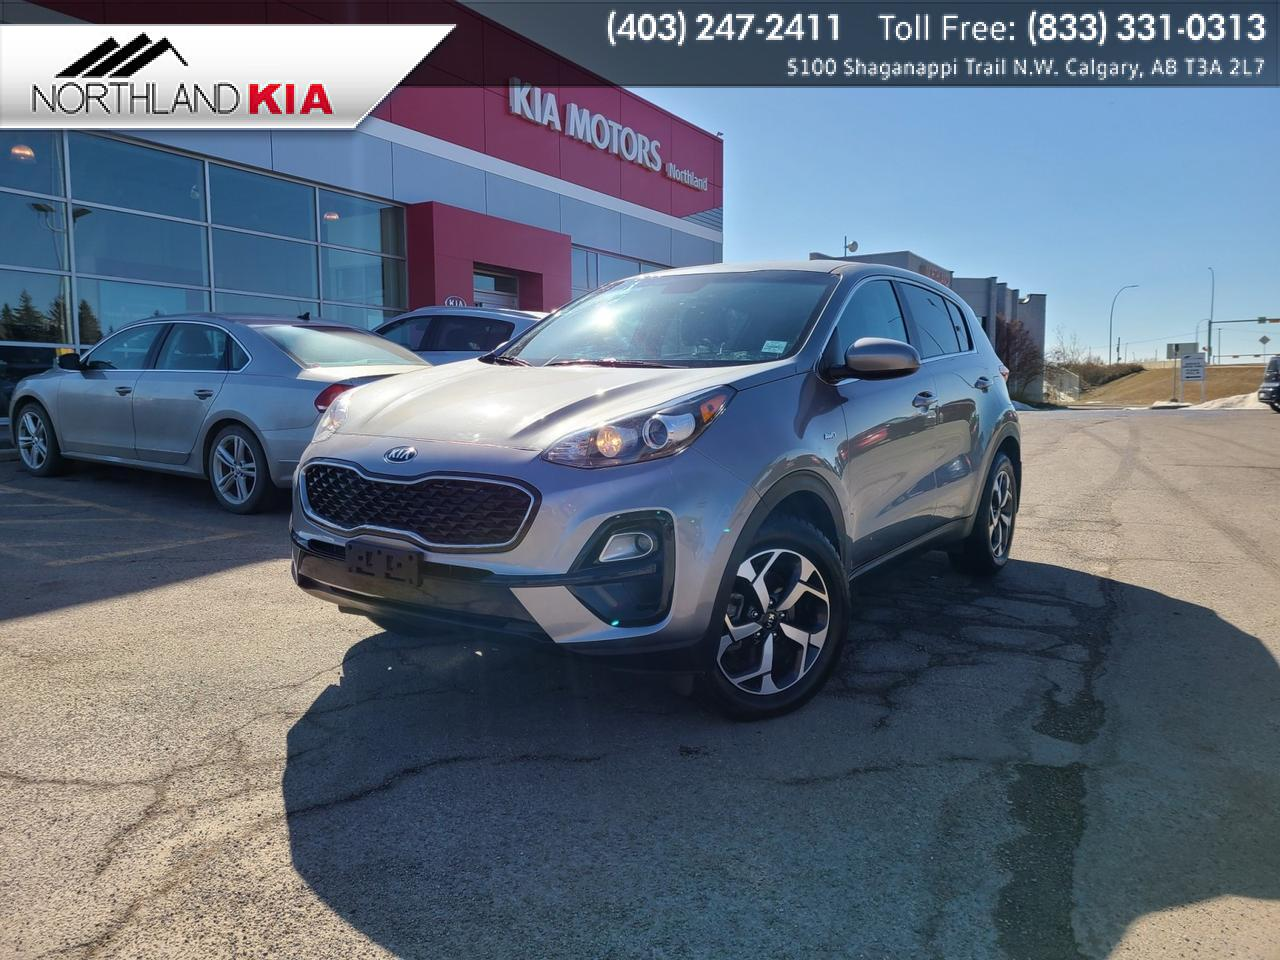 2020 Kia Sportage LX AWD, HEATED SEATS, BACKUP CAMERA, APPLE CARPLAY, ANDRIOD AUTO Calgary AB